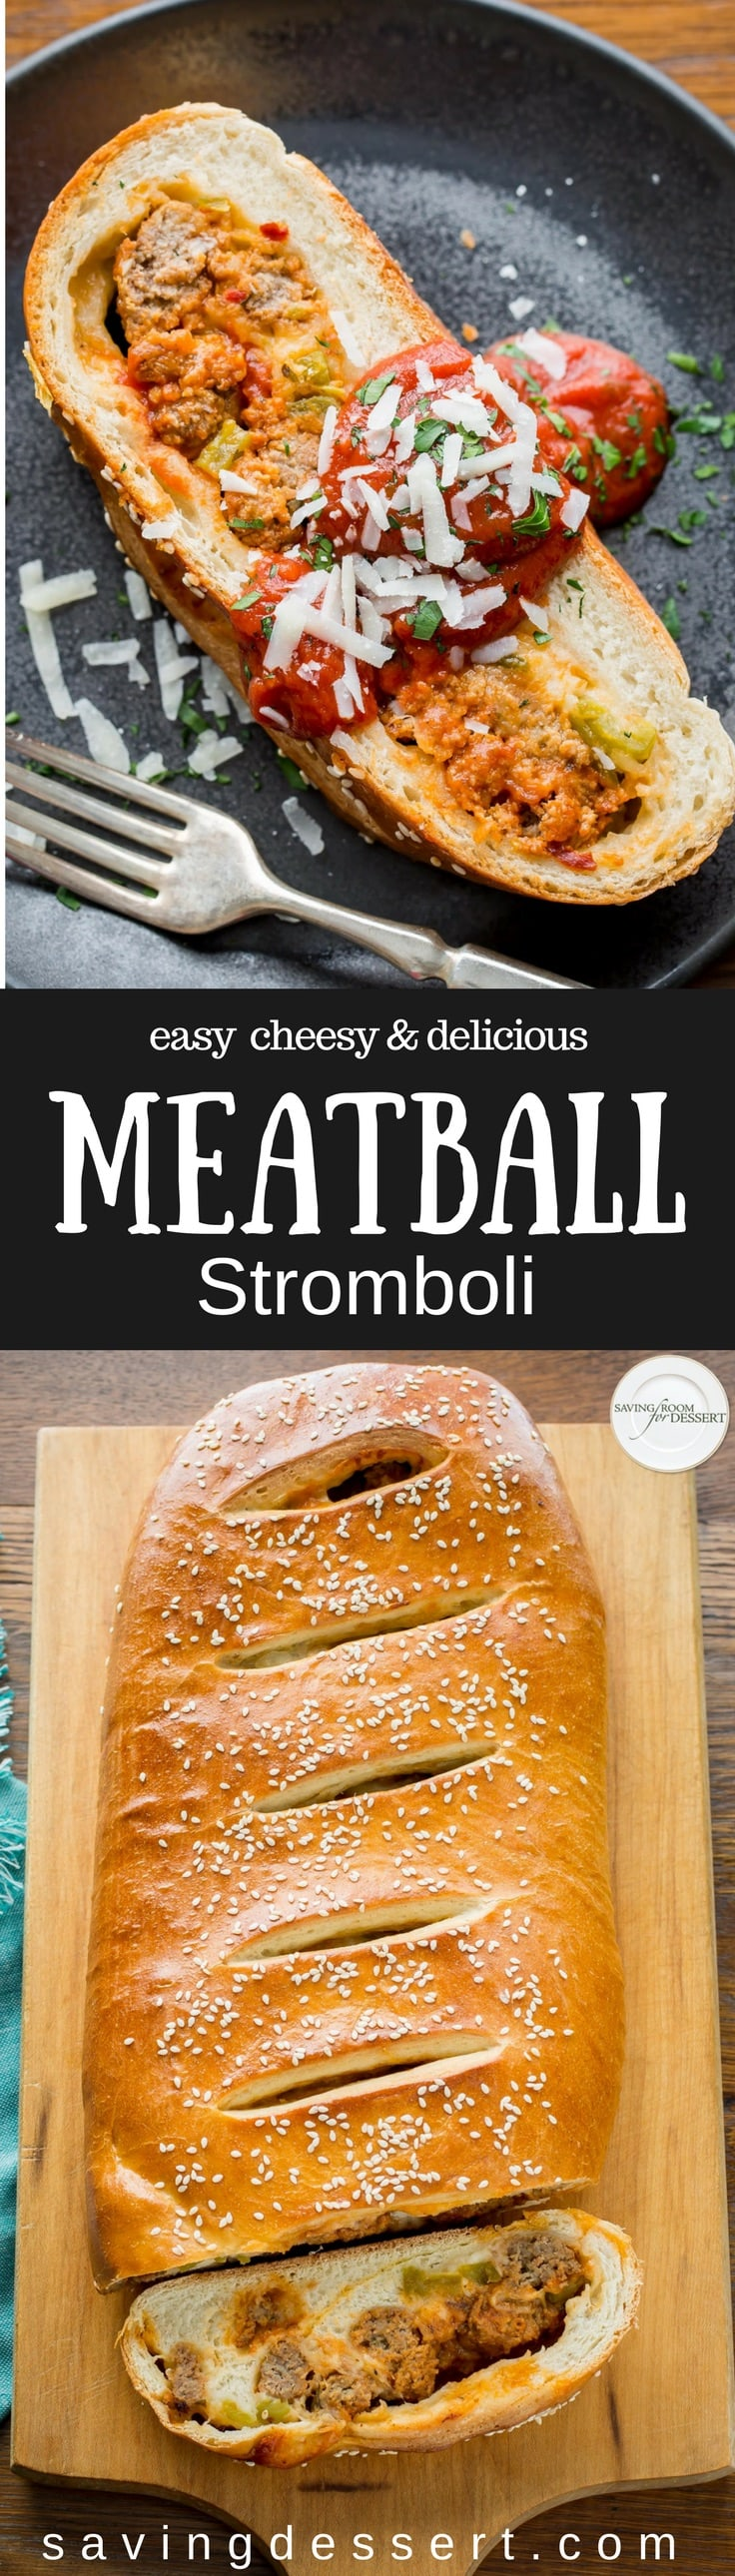 Enjoy this Cheesy Meatball Stromboli Recipe made with store-bought pizza dough, two kinds of cheese, frozen meatballs and jarred pizza sauce for a delicious and hearty fresh-baked Italian-American experience. #savingroomfordessert #meatball #italianmeatball #stromboli #pizzadough #dinner #italiandinner #meatballstromboli